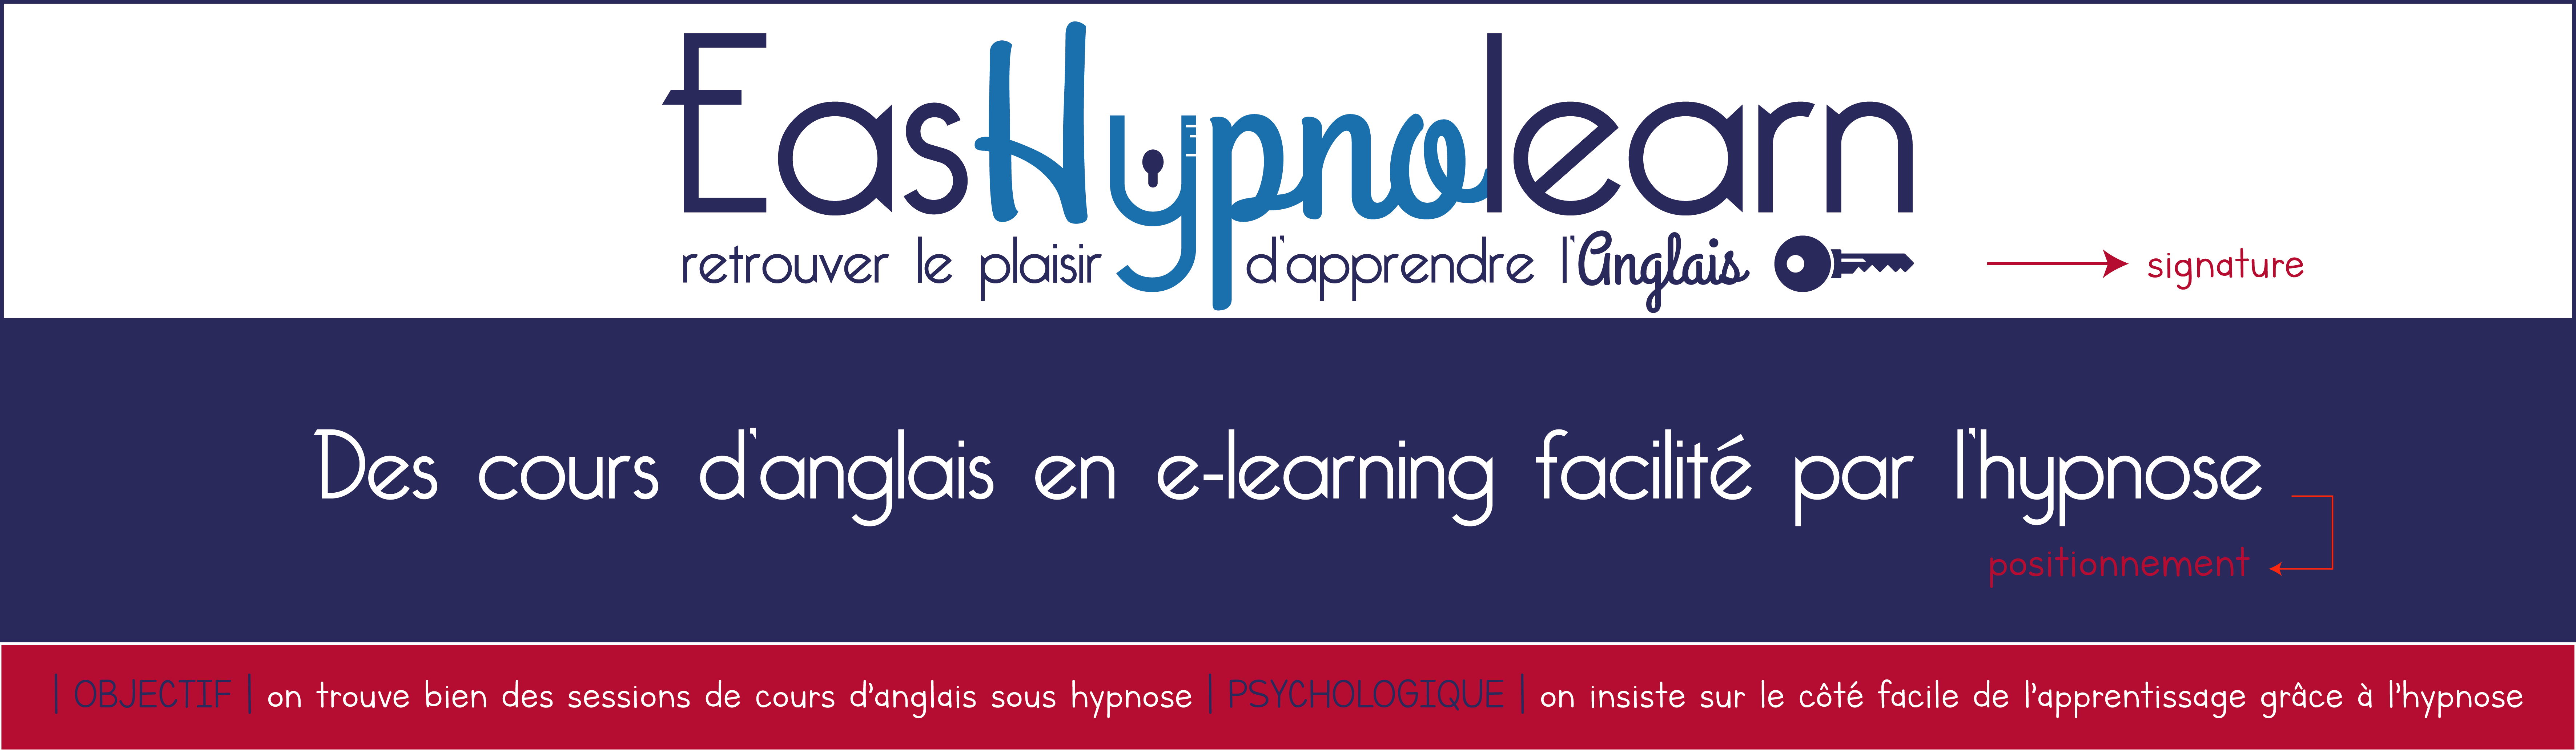 Eashypnolearn positionnement